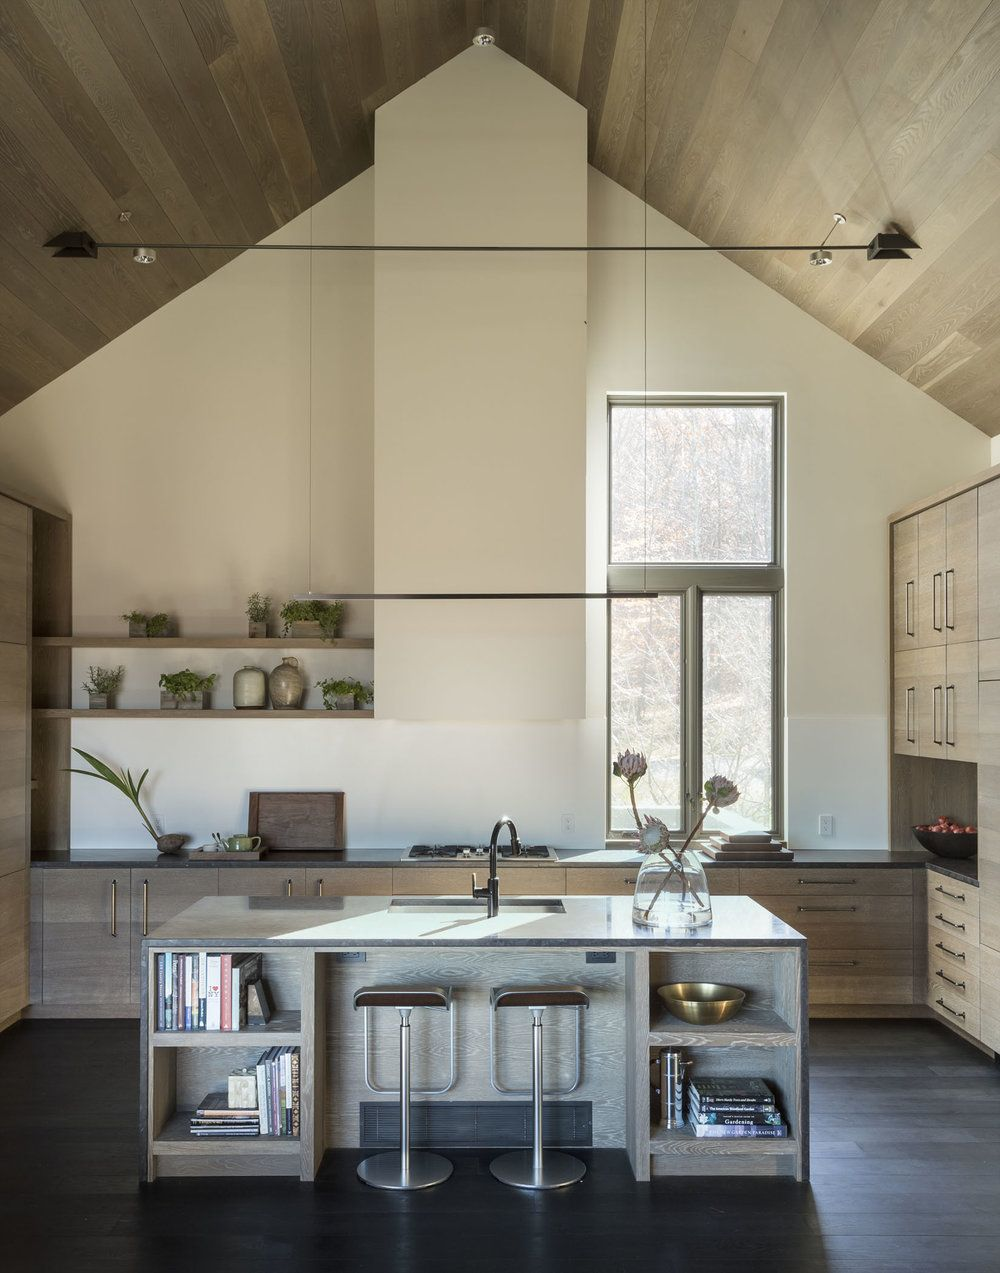 Wood Ceiling Vaulted Ceiling In The Kitchen Lovely Warm Tones White Oak Wood Cabinetry Marti Kitchen Ceiling Vaulted Ceiling Kitchen Wood Plank Ceiling